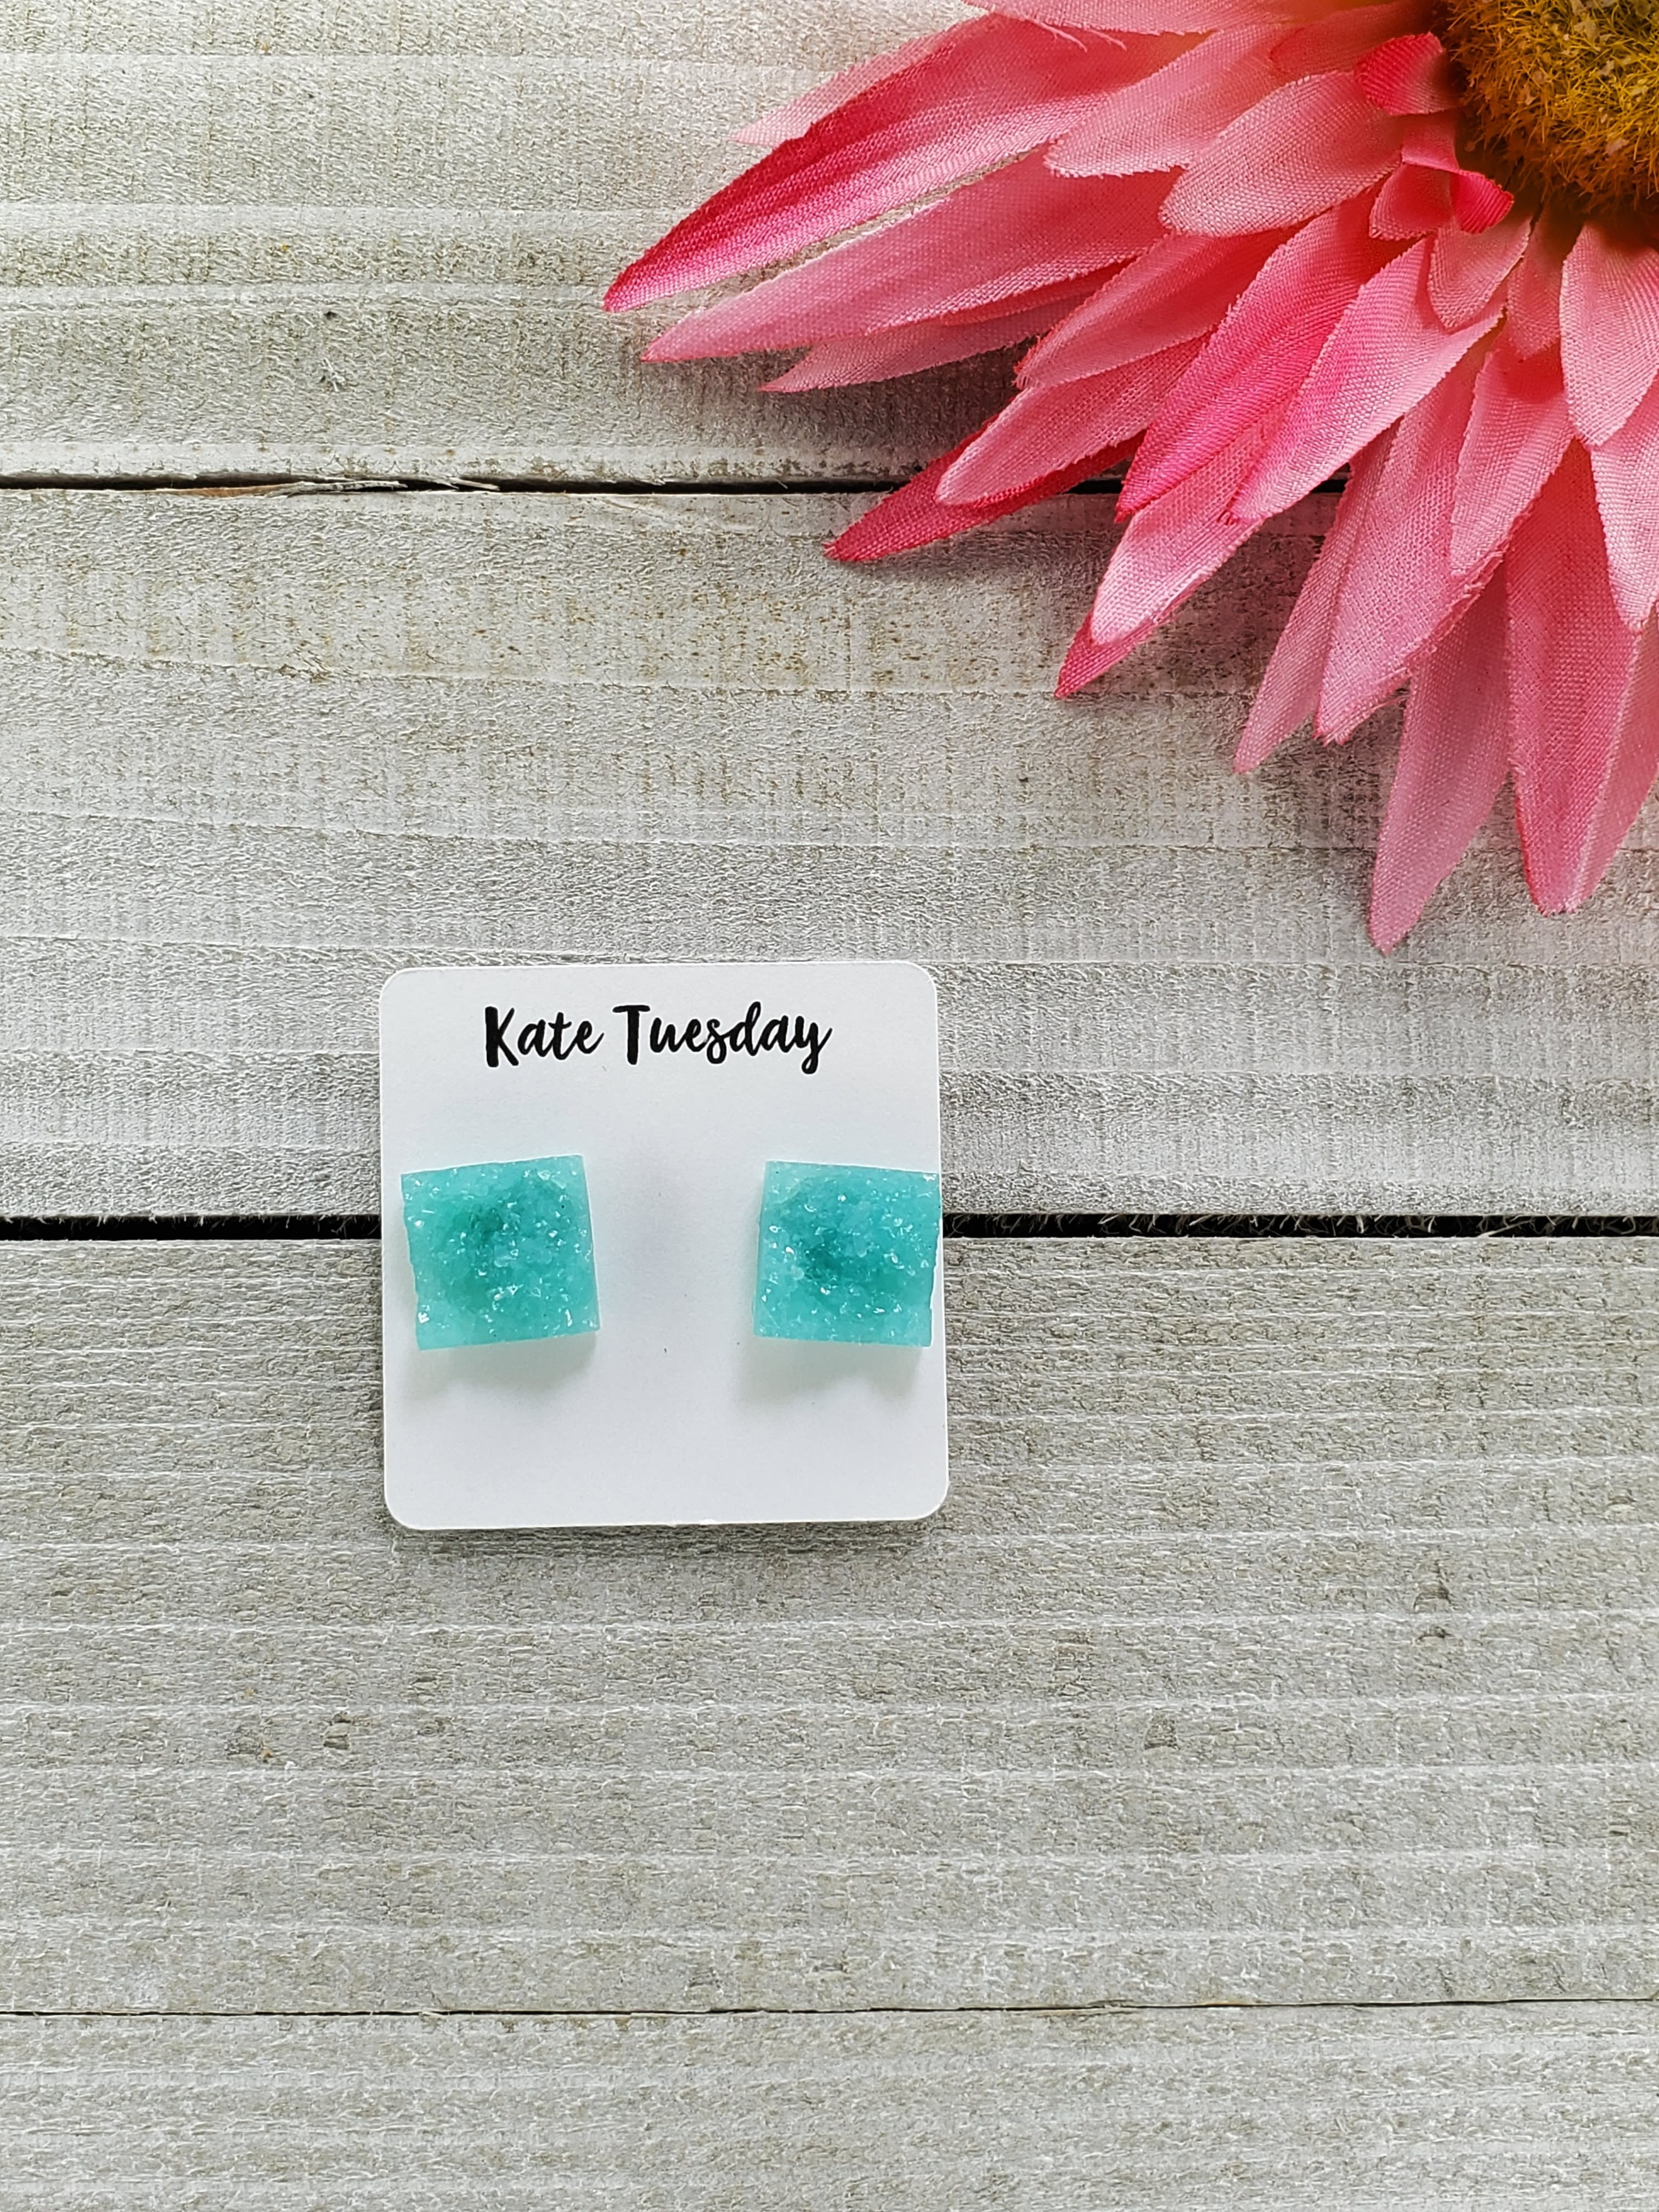 12mm Square Druzy Stone Earring studs. Such fun summer colors and only $9. Available in a variety of colors.